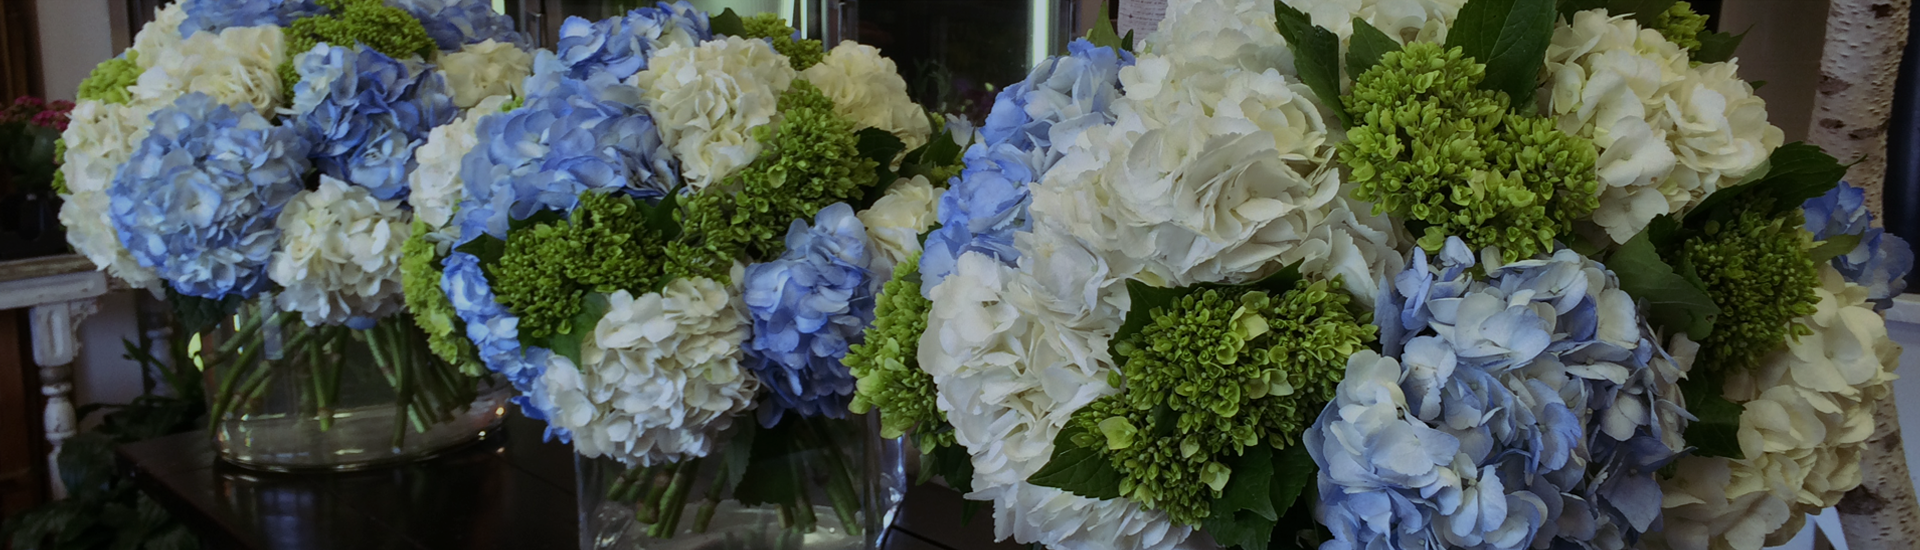 Flower Shop Wedding Florists Event Floral Tryforos Pernice